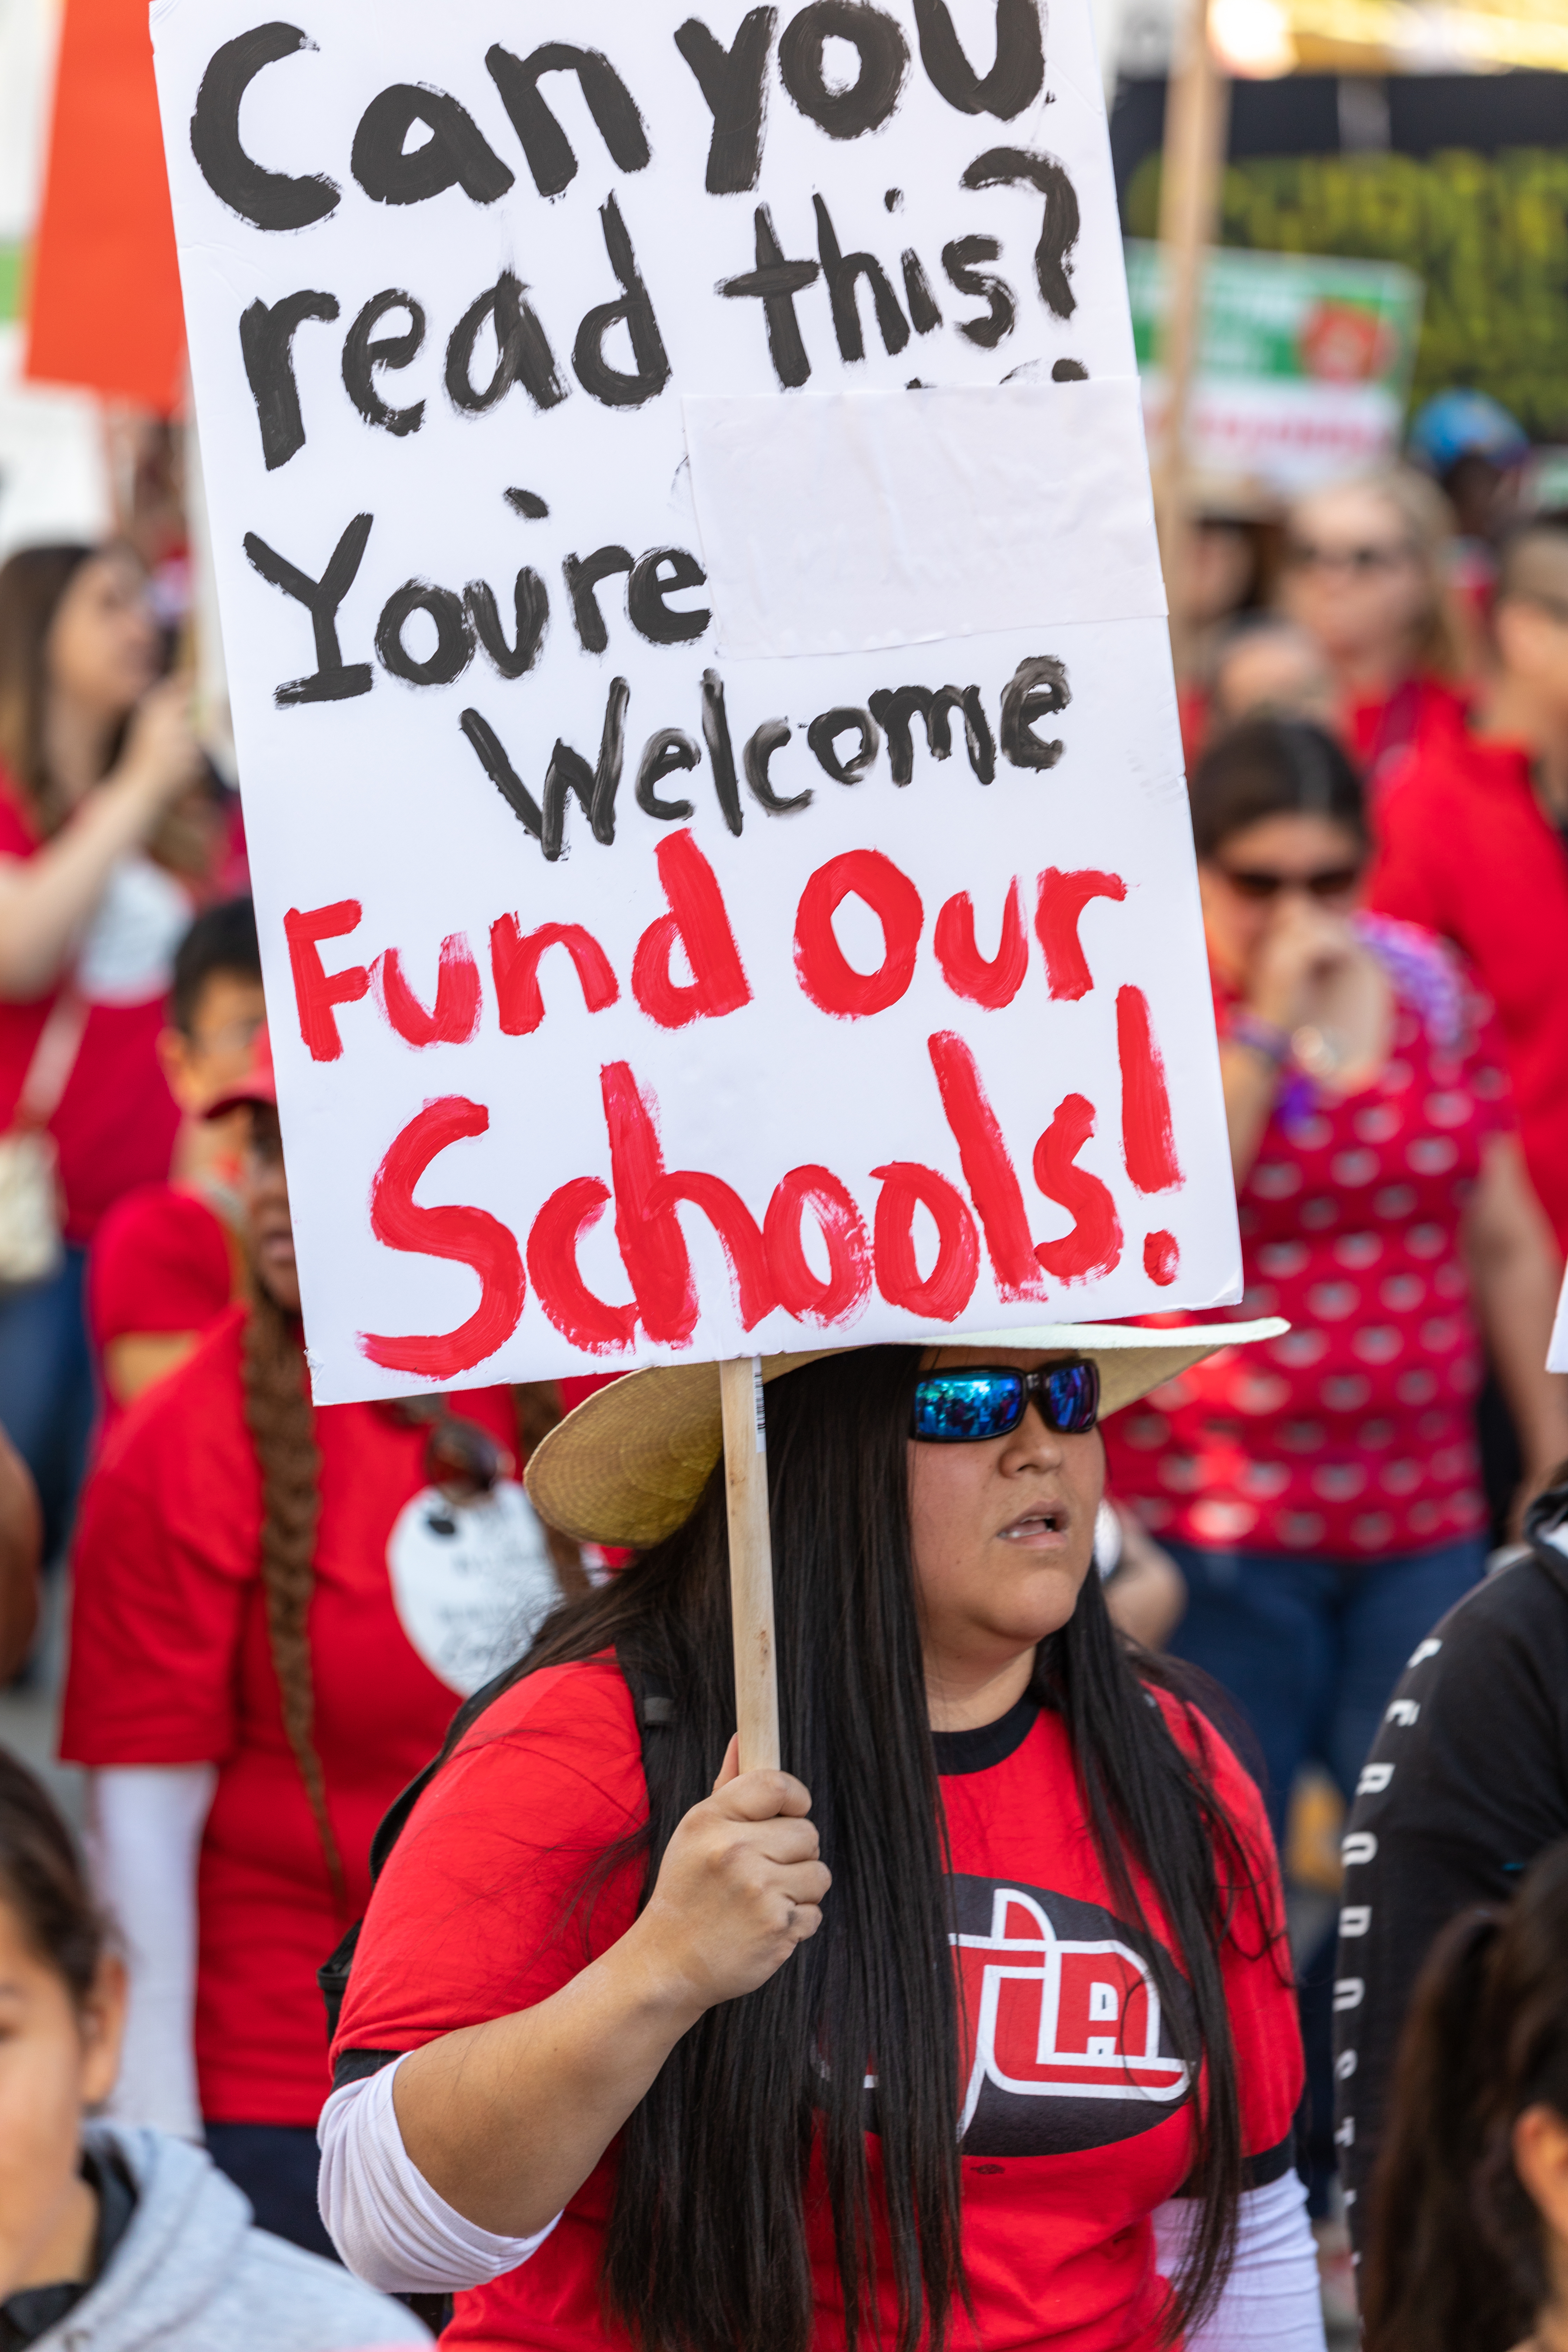 Pictured is a teacher protesting for more school funding. SHUTTERSTOCK/ Karl_Sonnenberg